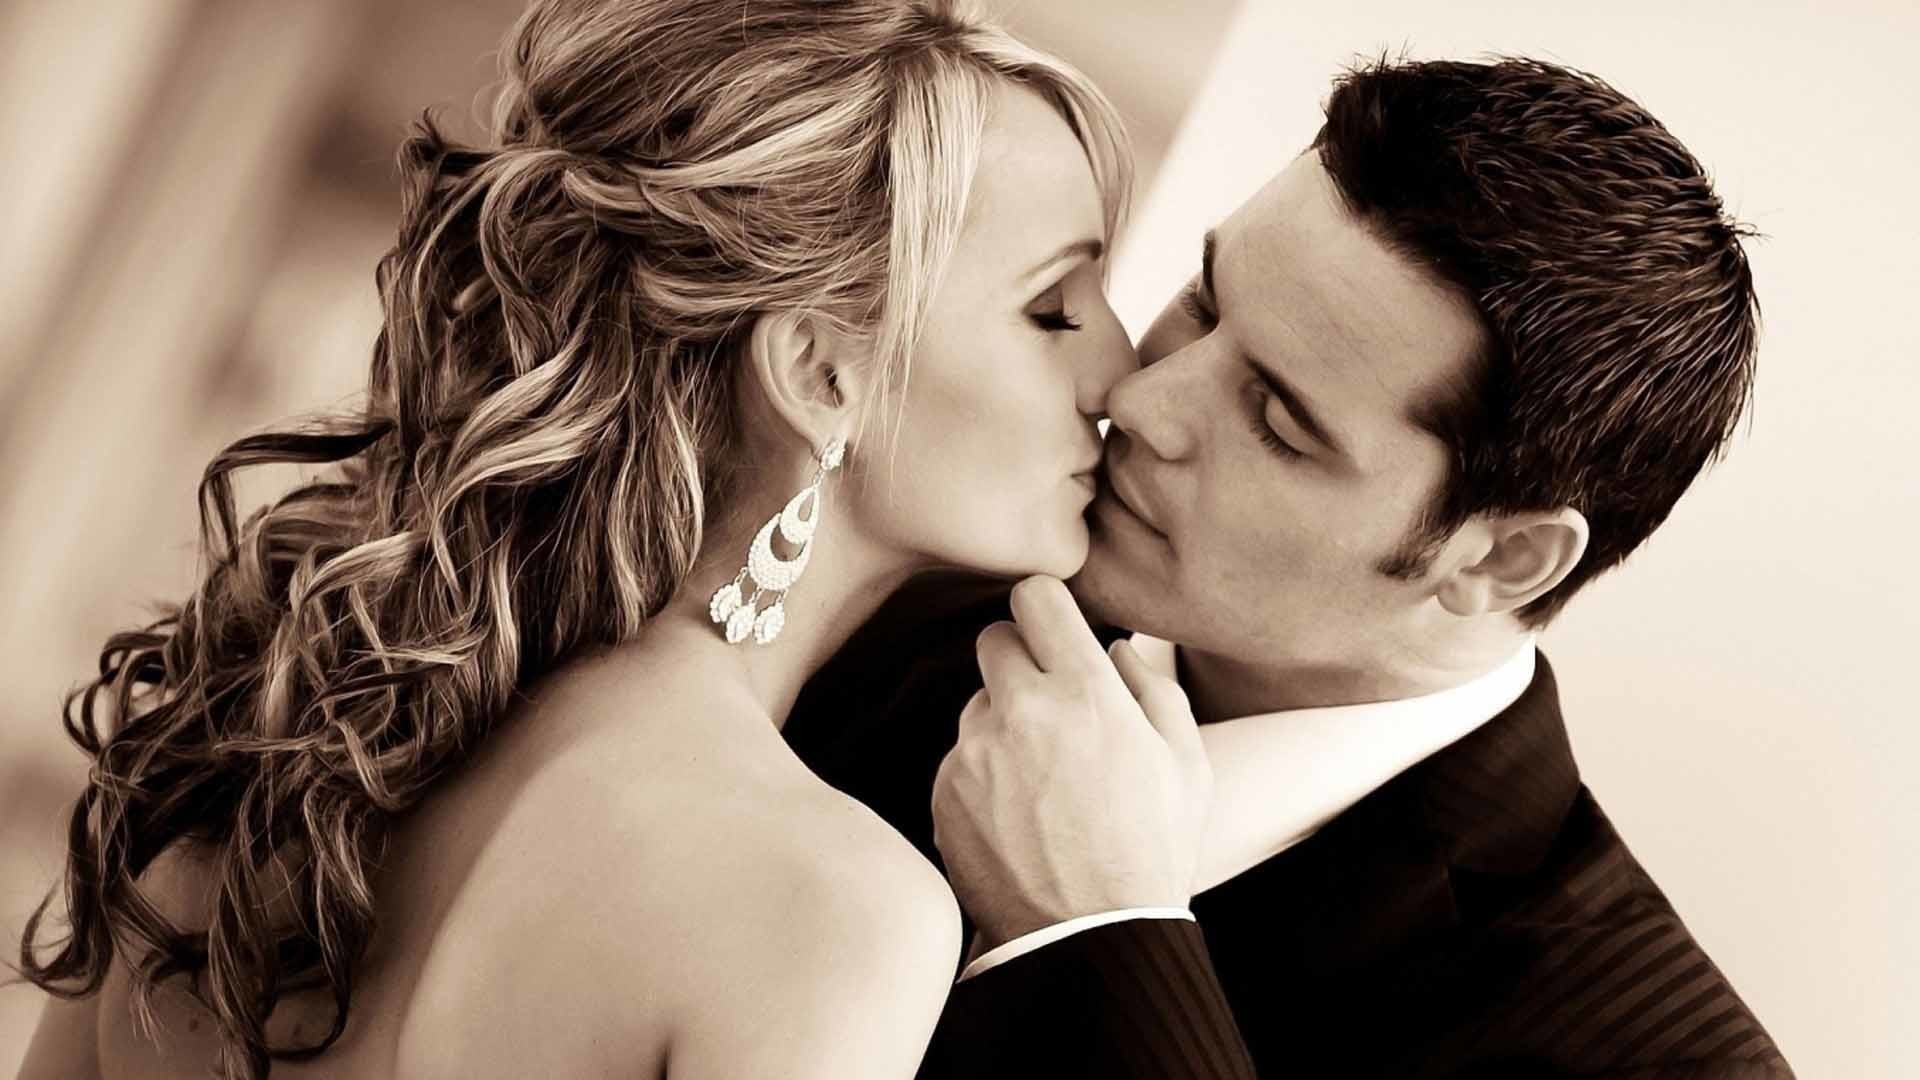 kissing wallpapers hd 2018 71 background pictures